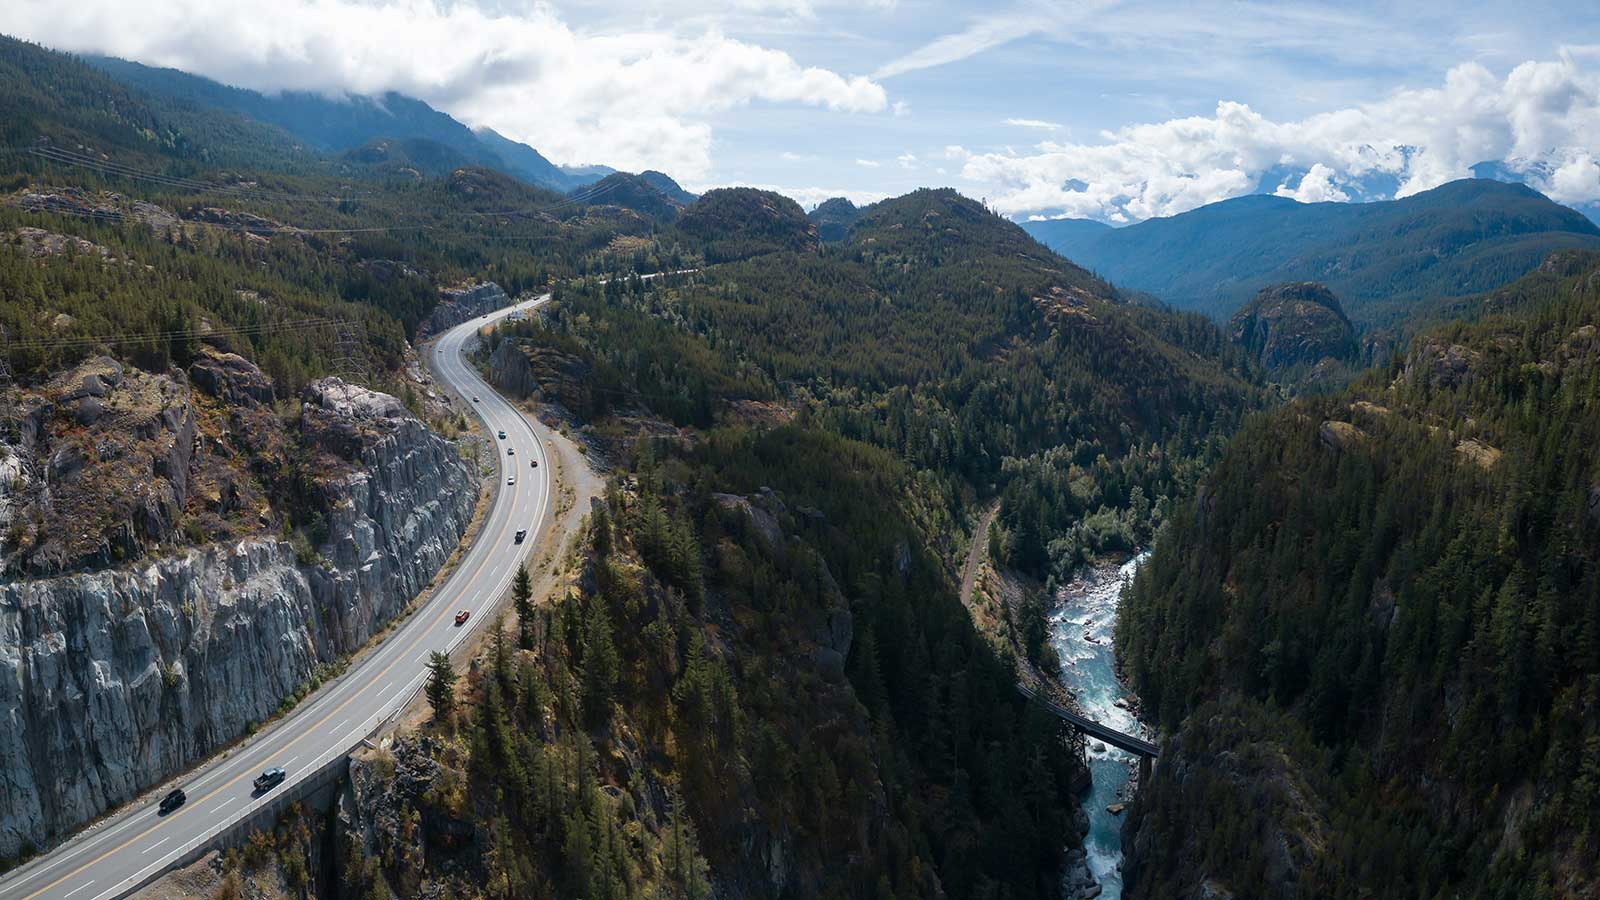 Squamish Real Estate - Take The Scenic Route